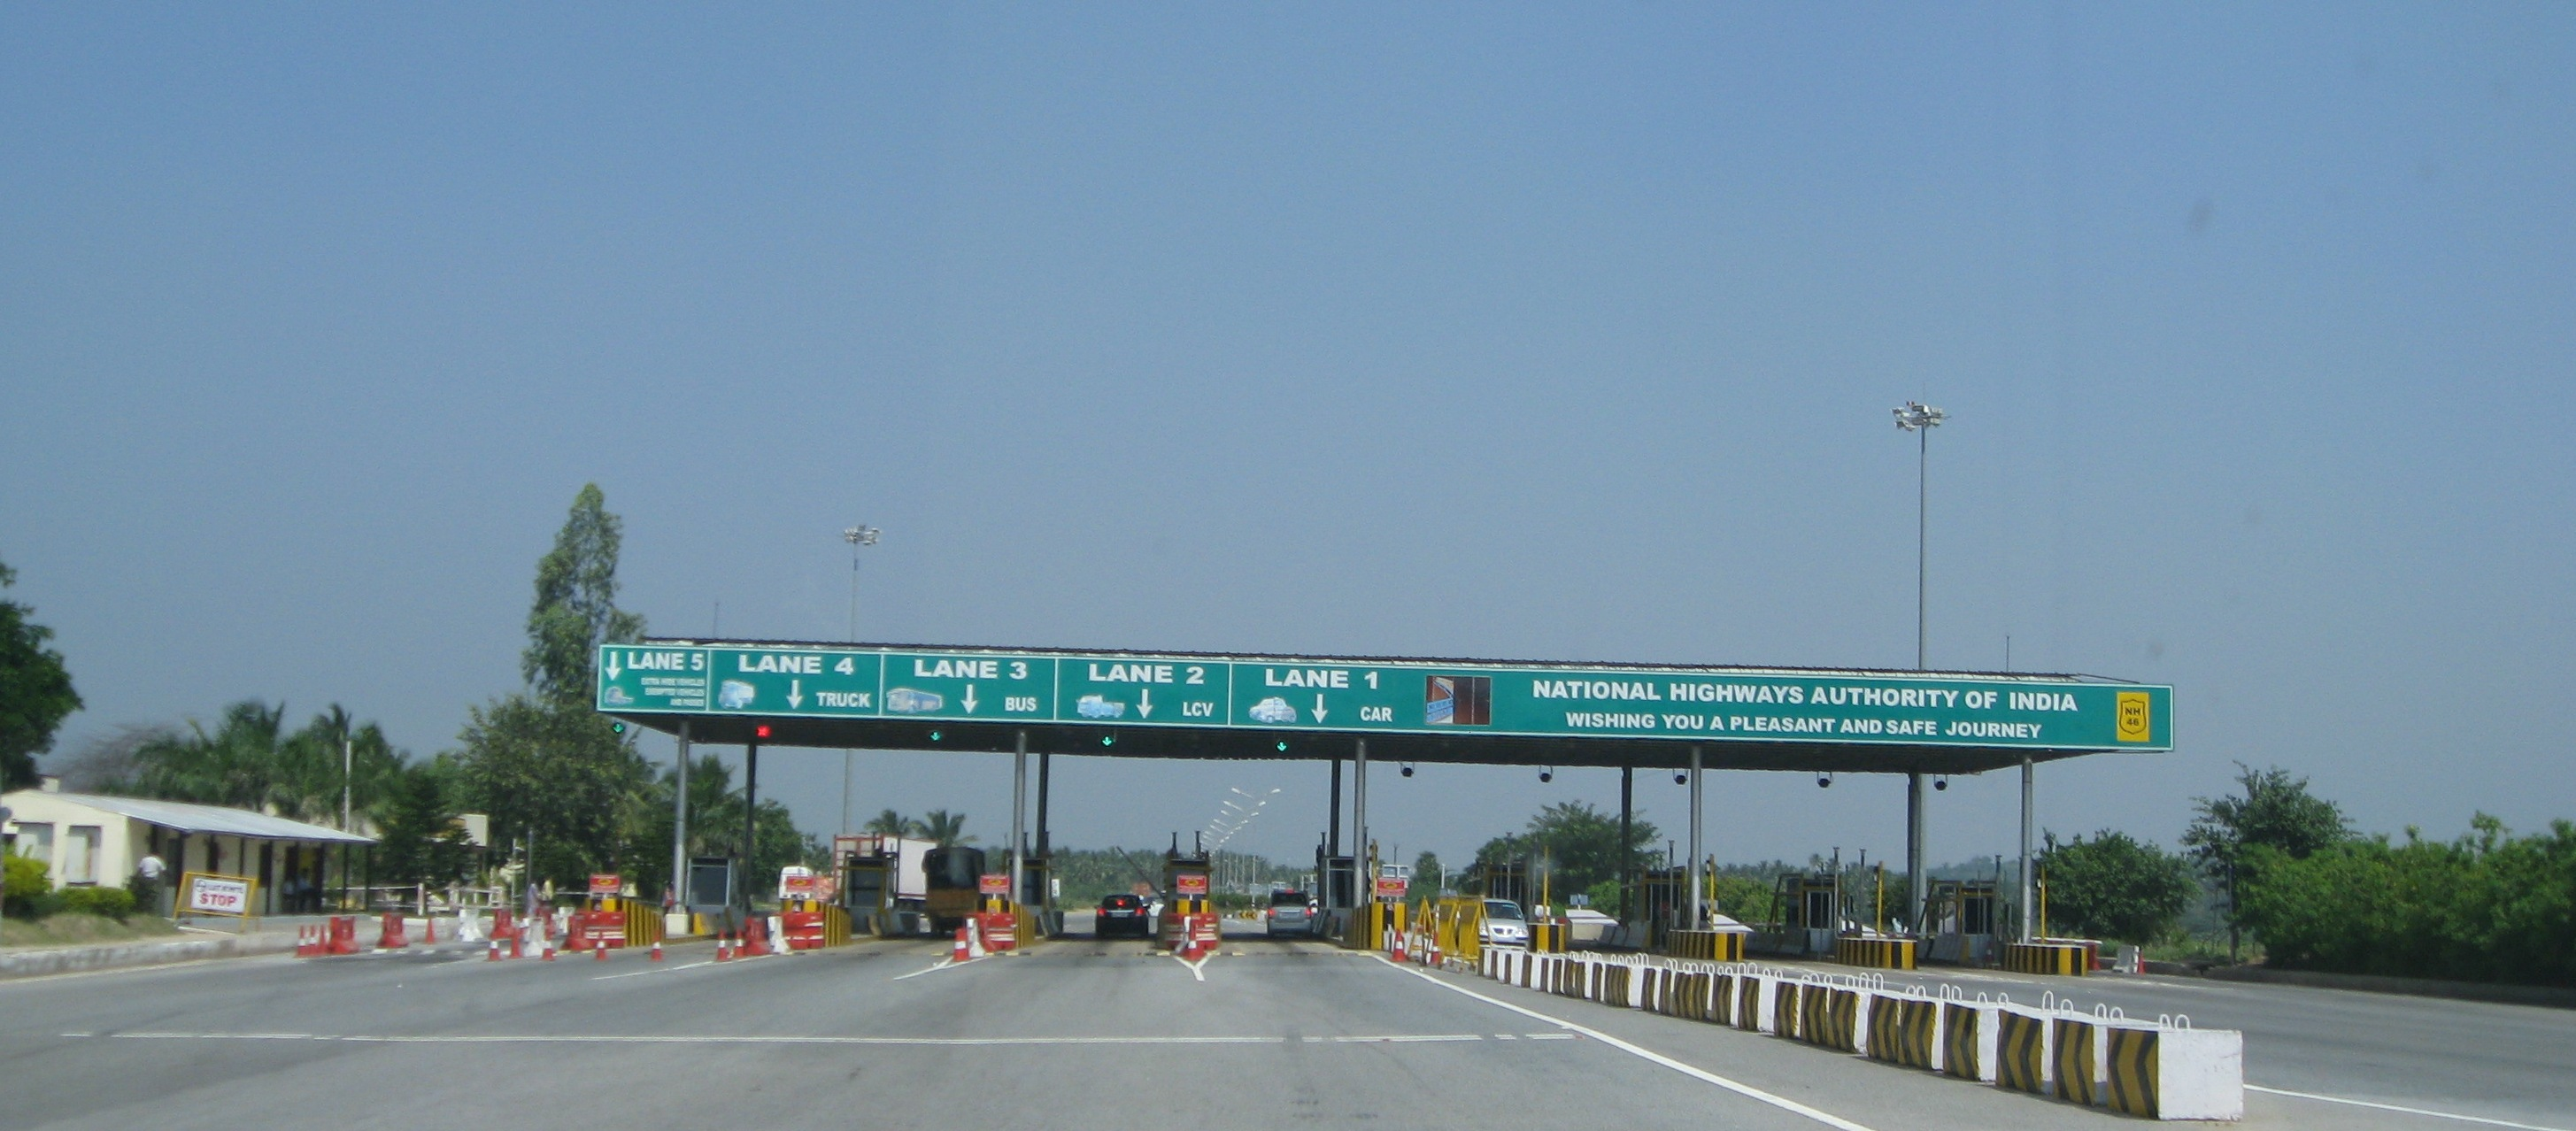 License Plate Camera >> File:LT-KWTL-Vaniyambadi-Toll-Plaza.JPG - Wikimedia Commons